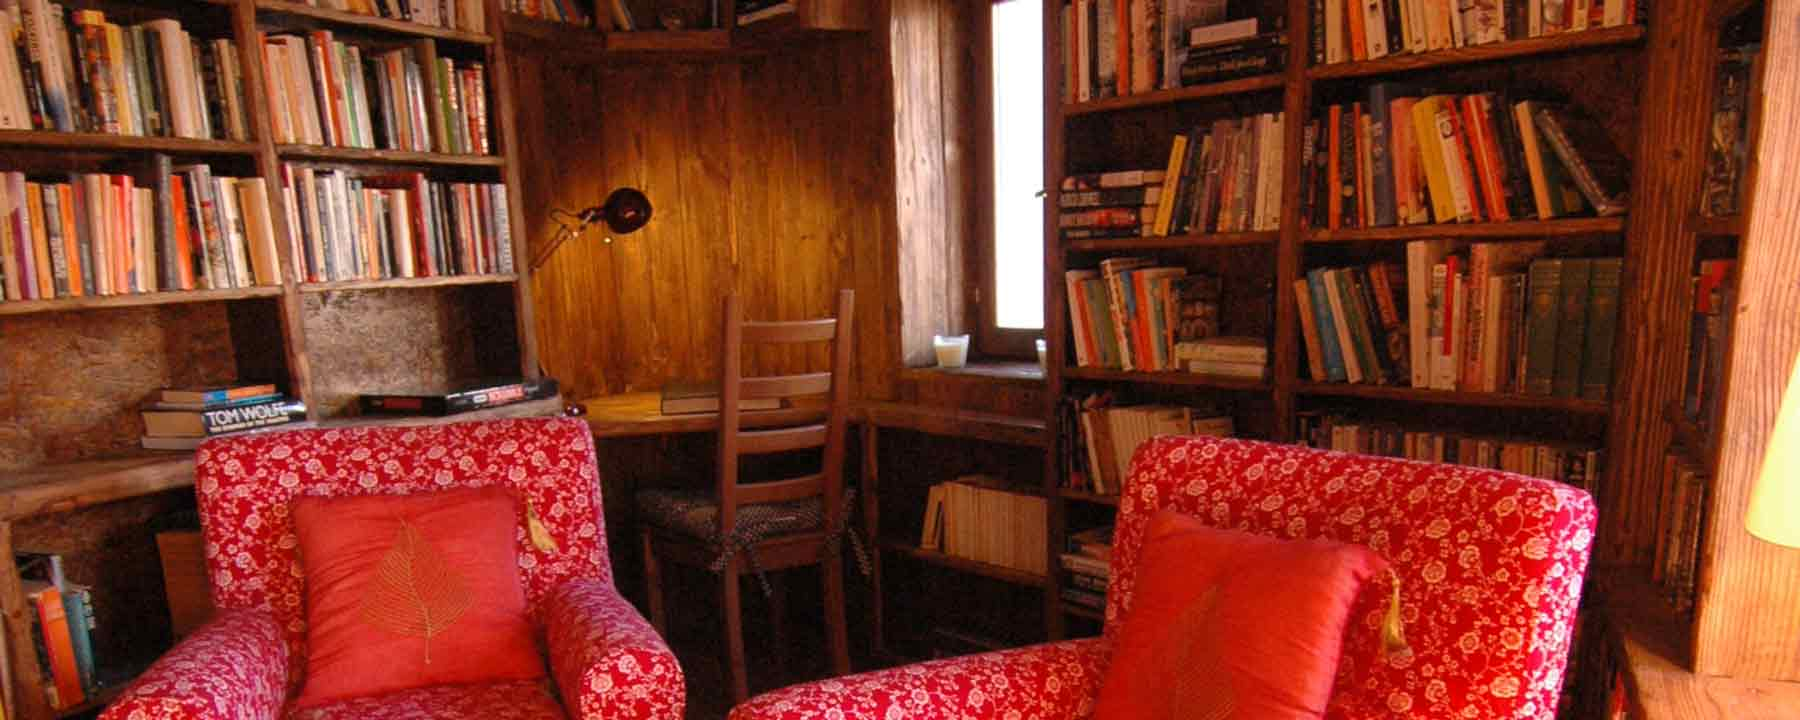 Retreat to the Chalet library